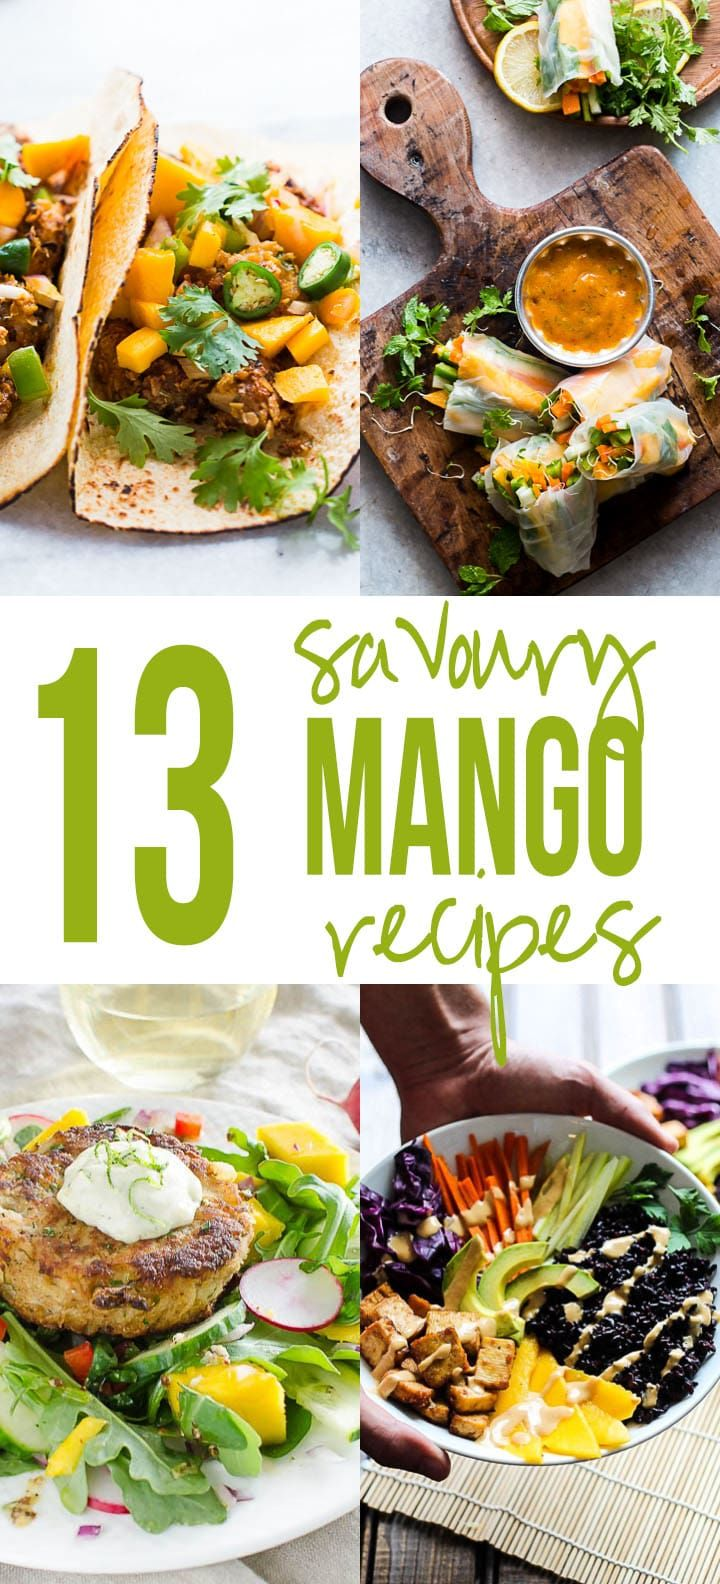 Love Mangoes? Make the most of them with 13 insanely delicious recipes that use mangoes in savoury dishes so that you get the best of both worlds - sweet and spicy!